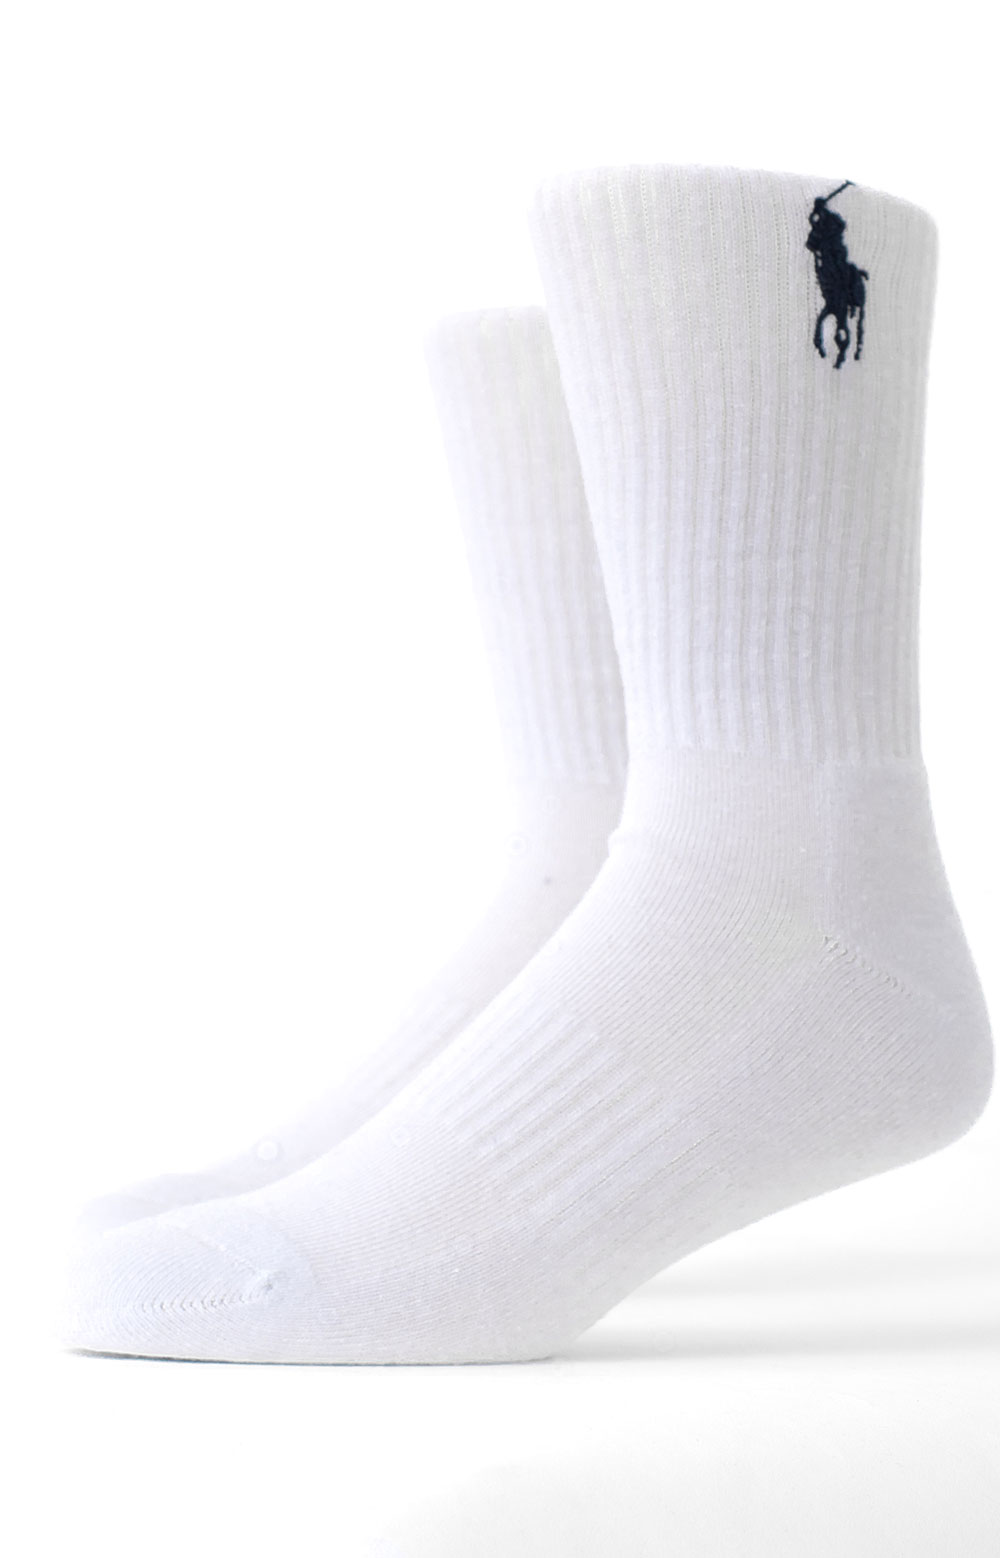 Embroidered Big Pony Crew 3 Pack Socks - Navy Assorted  3